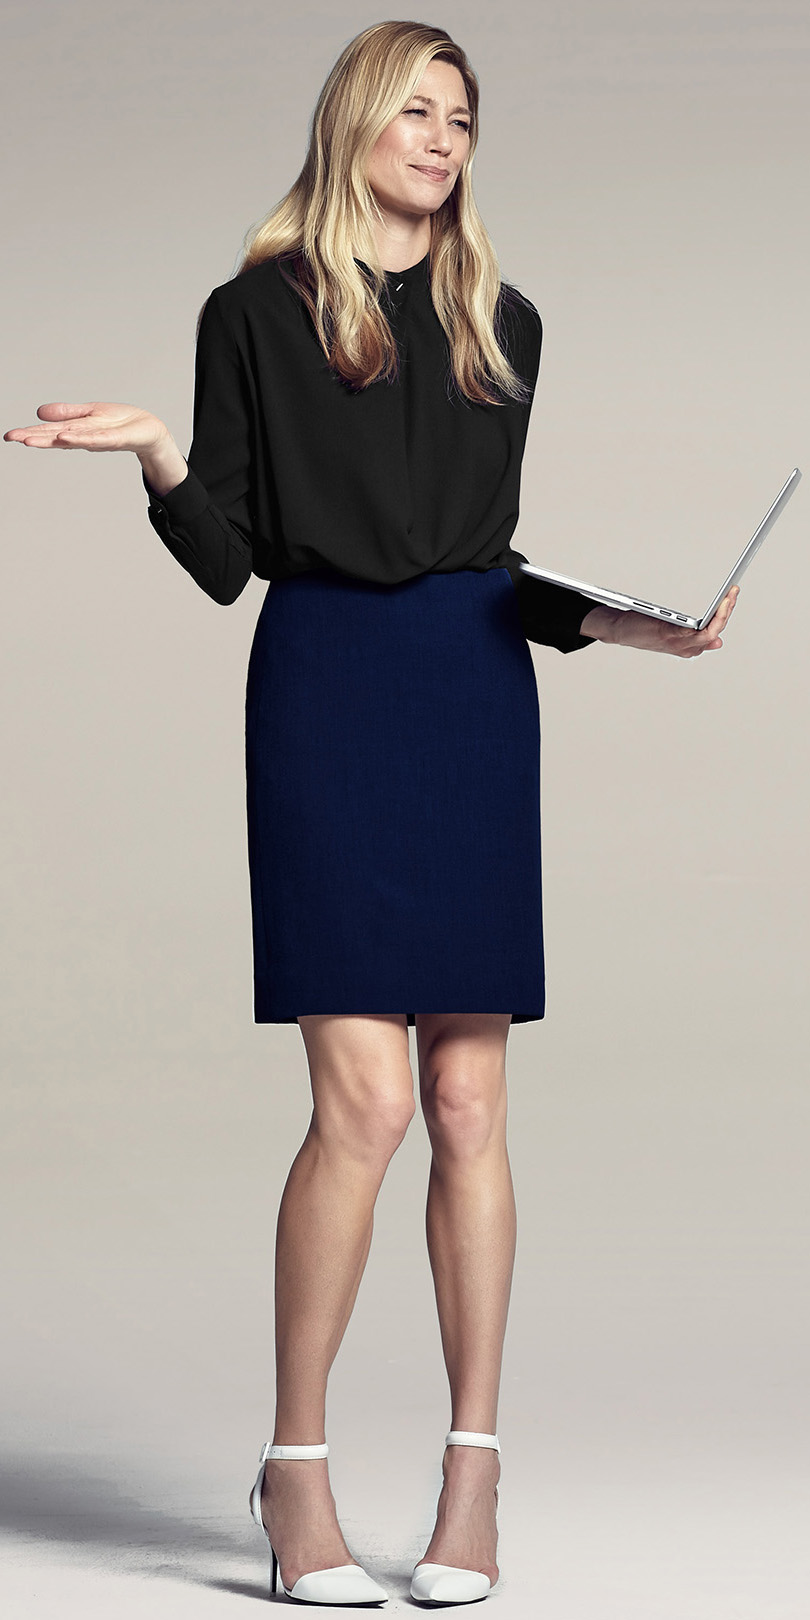 blue-navy-pencil-skirt-black-top-blouse-white-shoe-pumps--howtowear-fashion-style-outfit-spring-summer-blonde-work.jpg